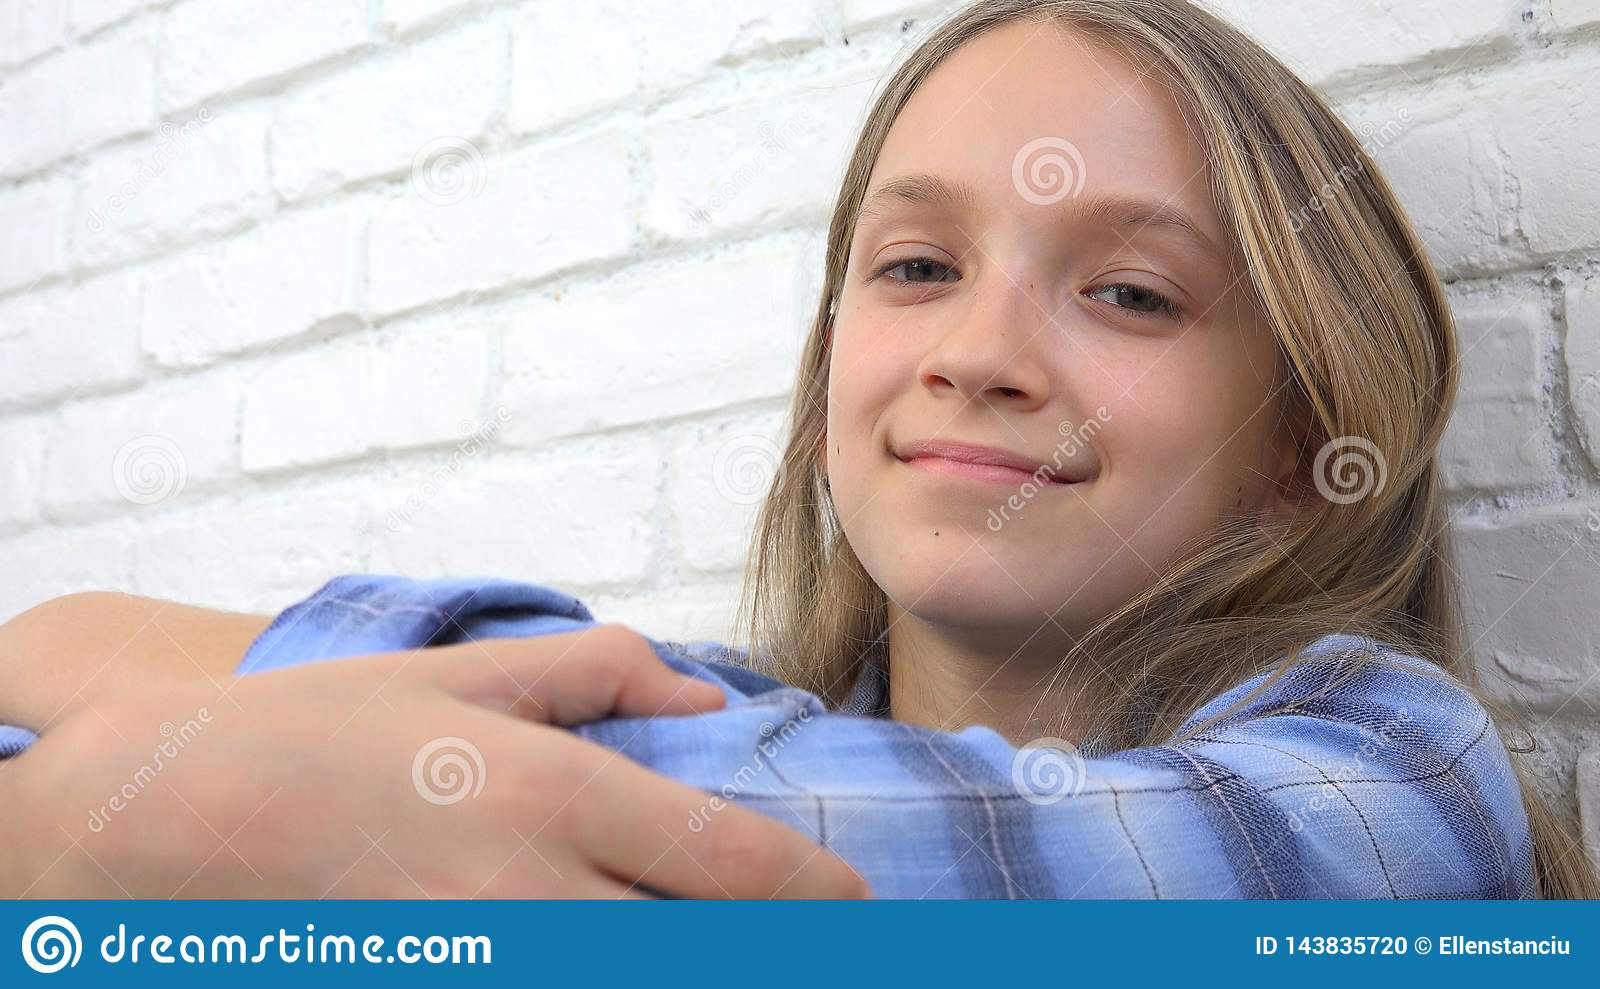 Thoughtful Child Portrait, Smiling Kid Face Looking in Camera Blonde Bored Girl